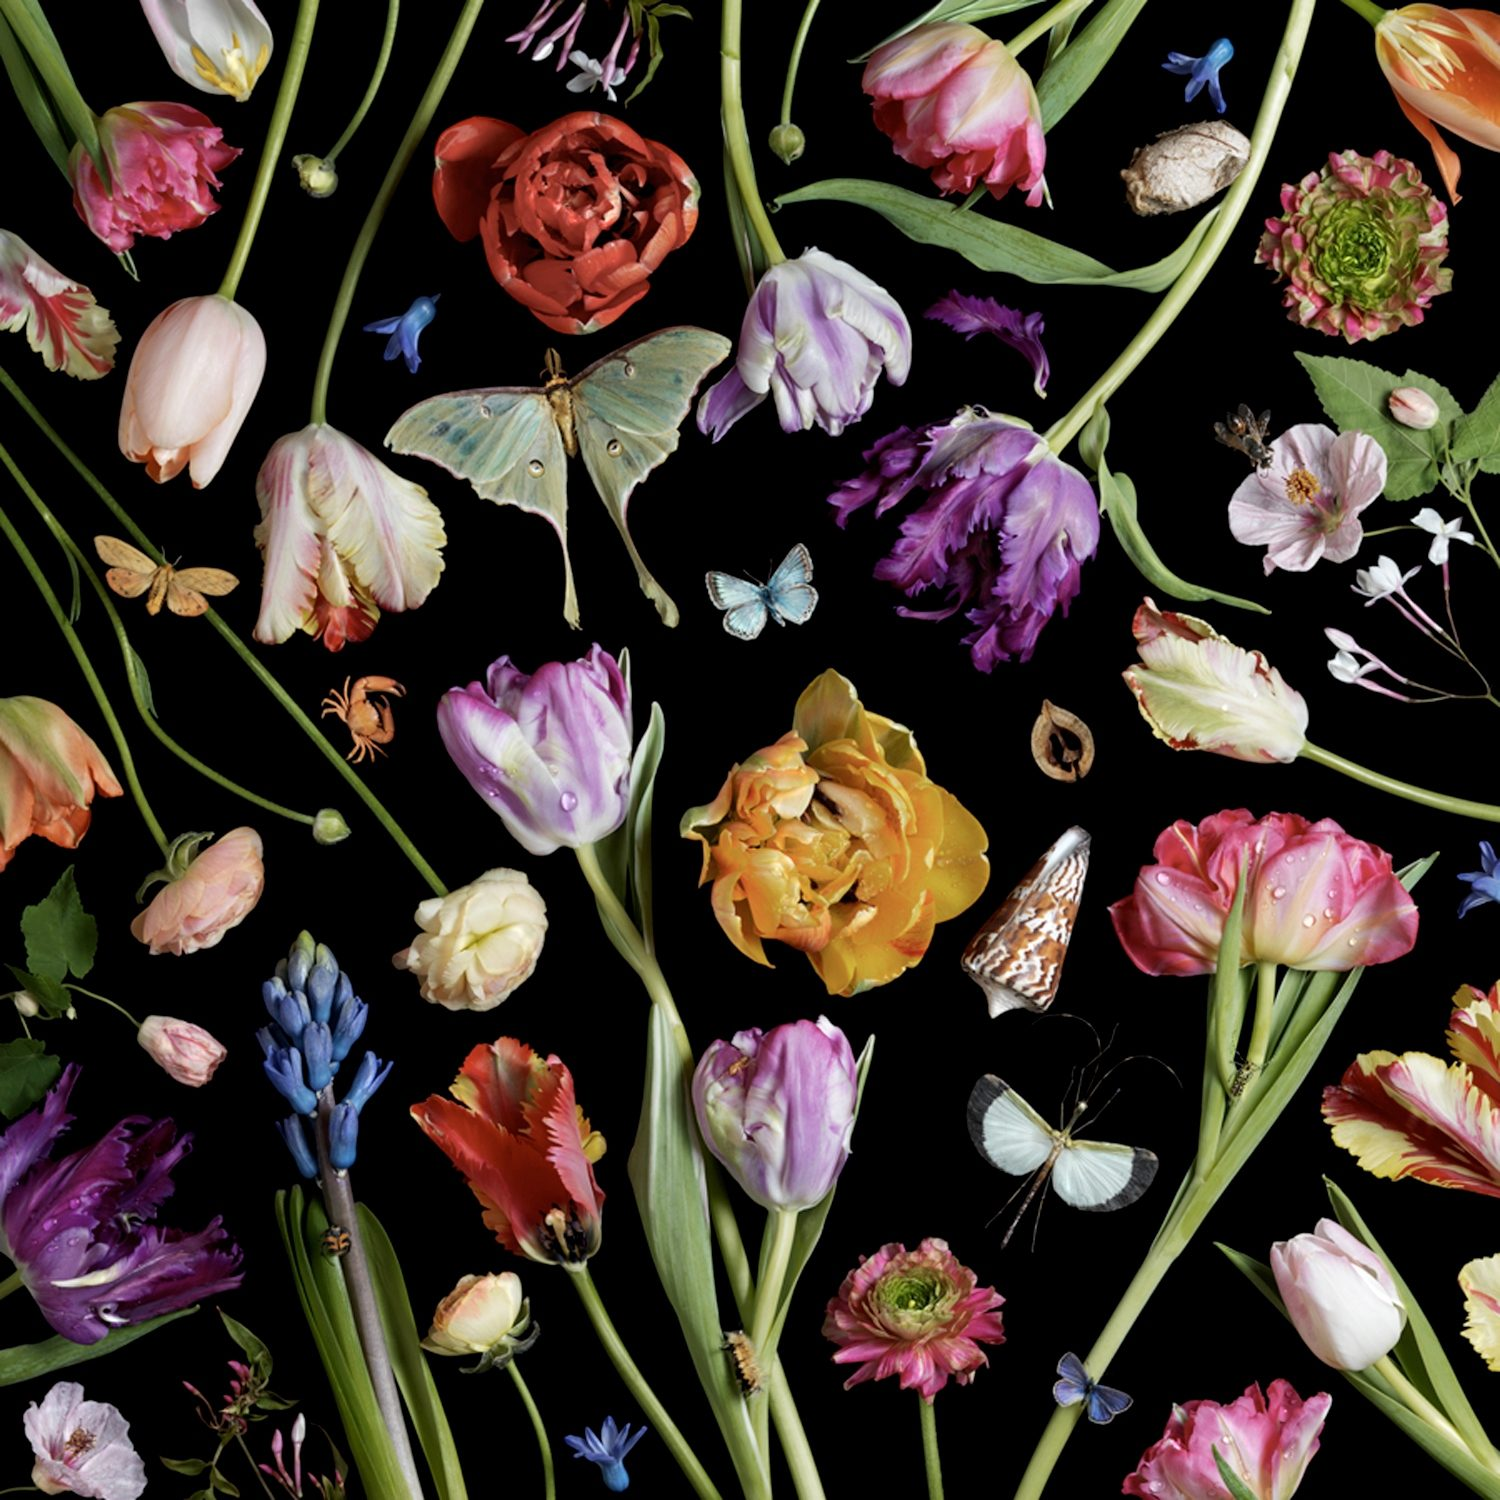 Botanical VII, Tulips